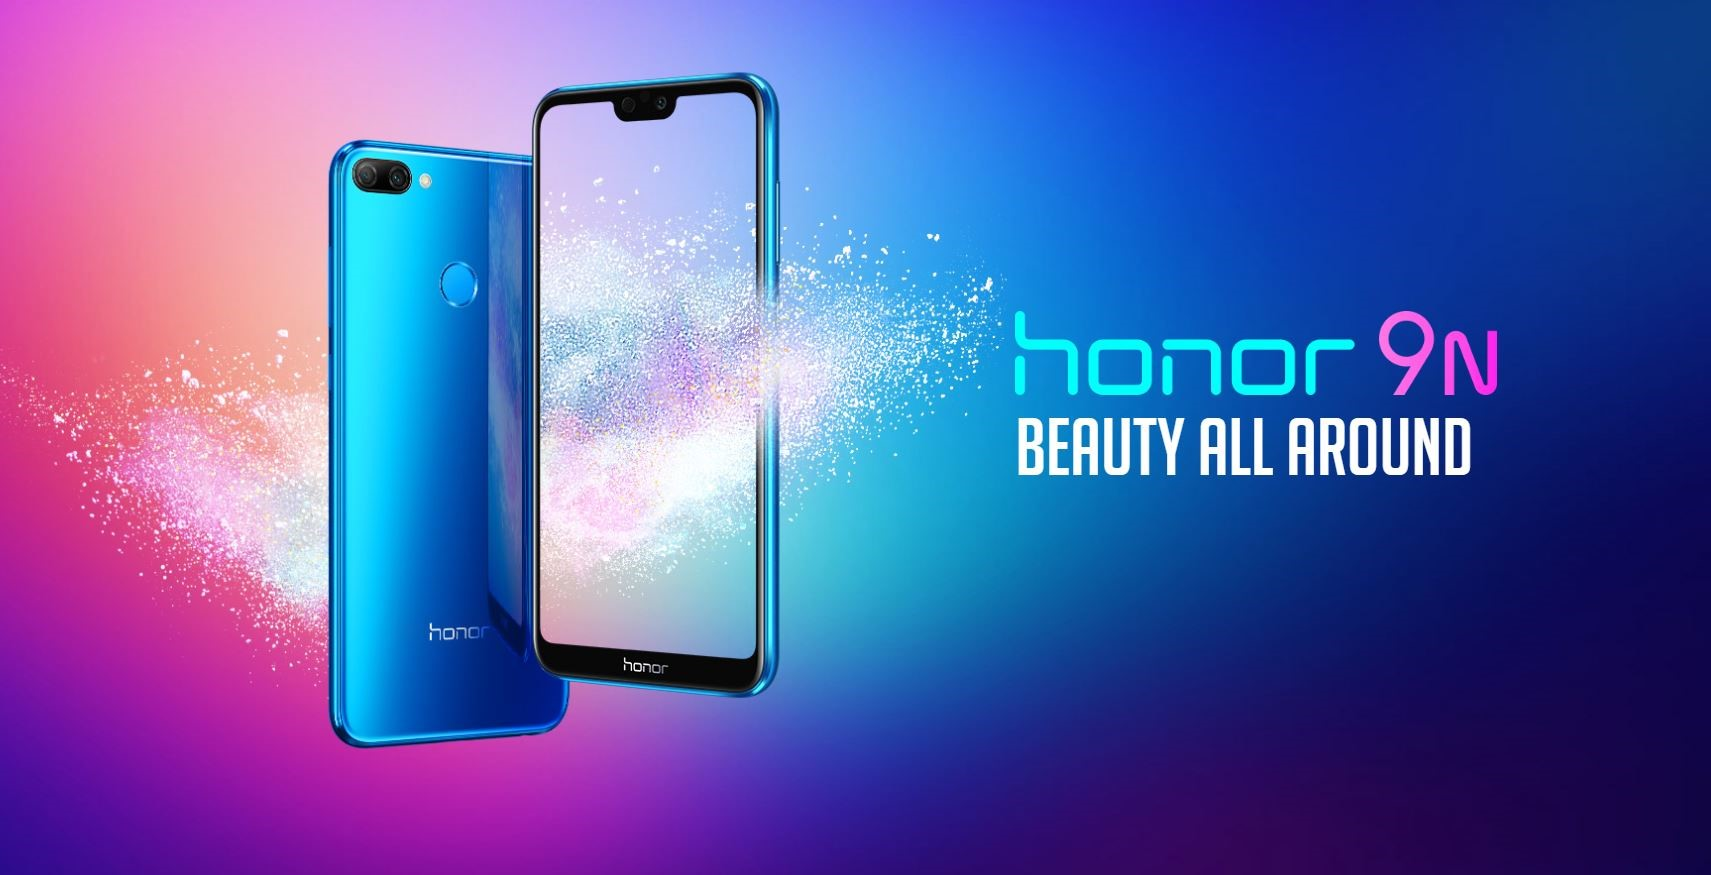 honor 9n beauty all around